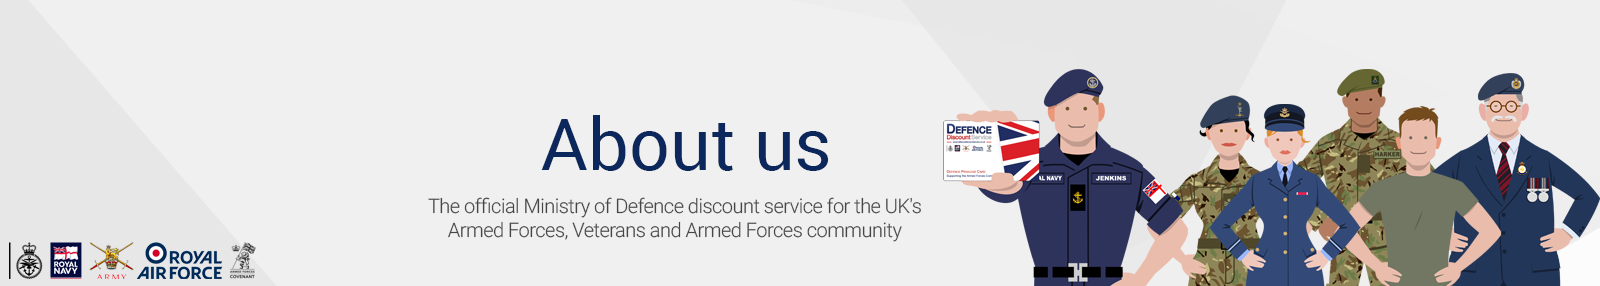 About the Official Defence Discount Service